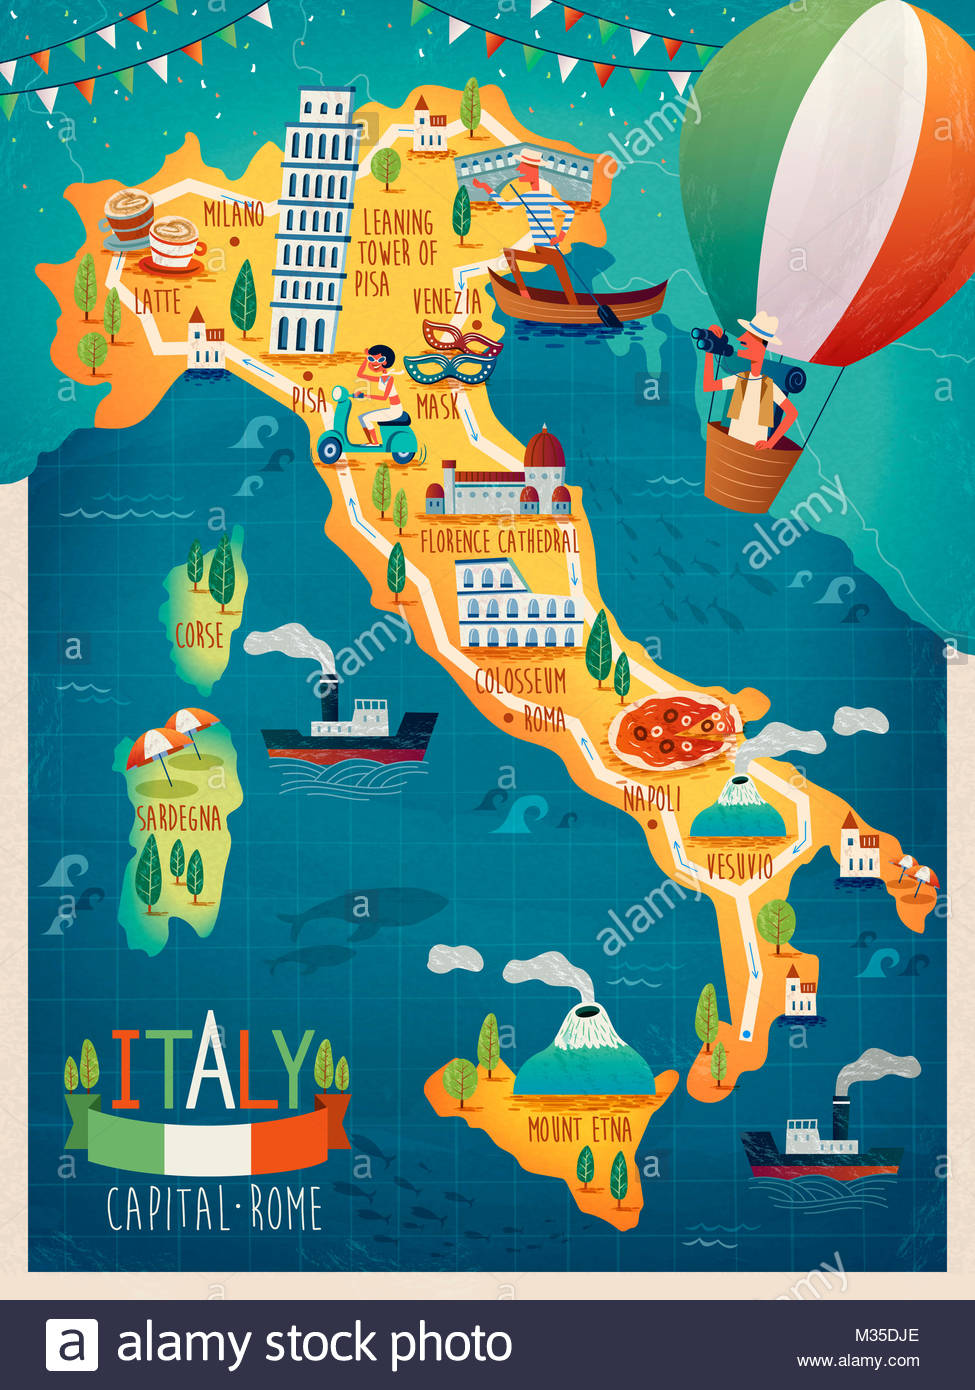 colorful Italy travel map with attraction symbols Italian words for